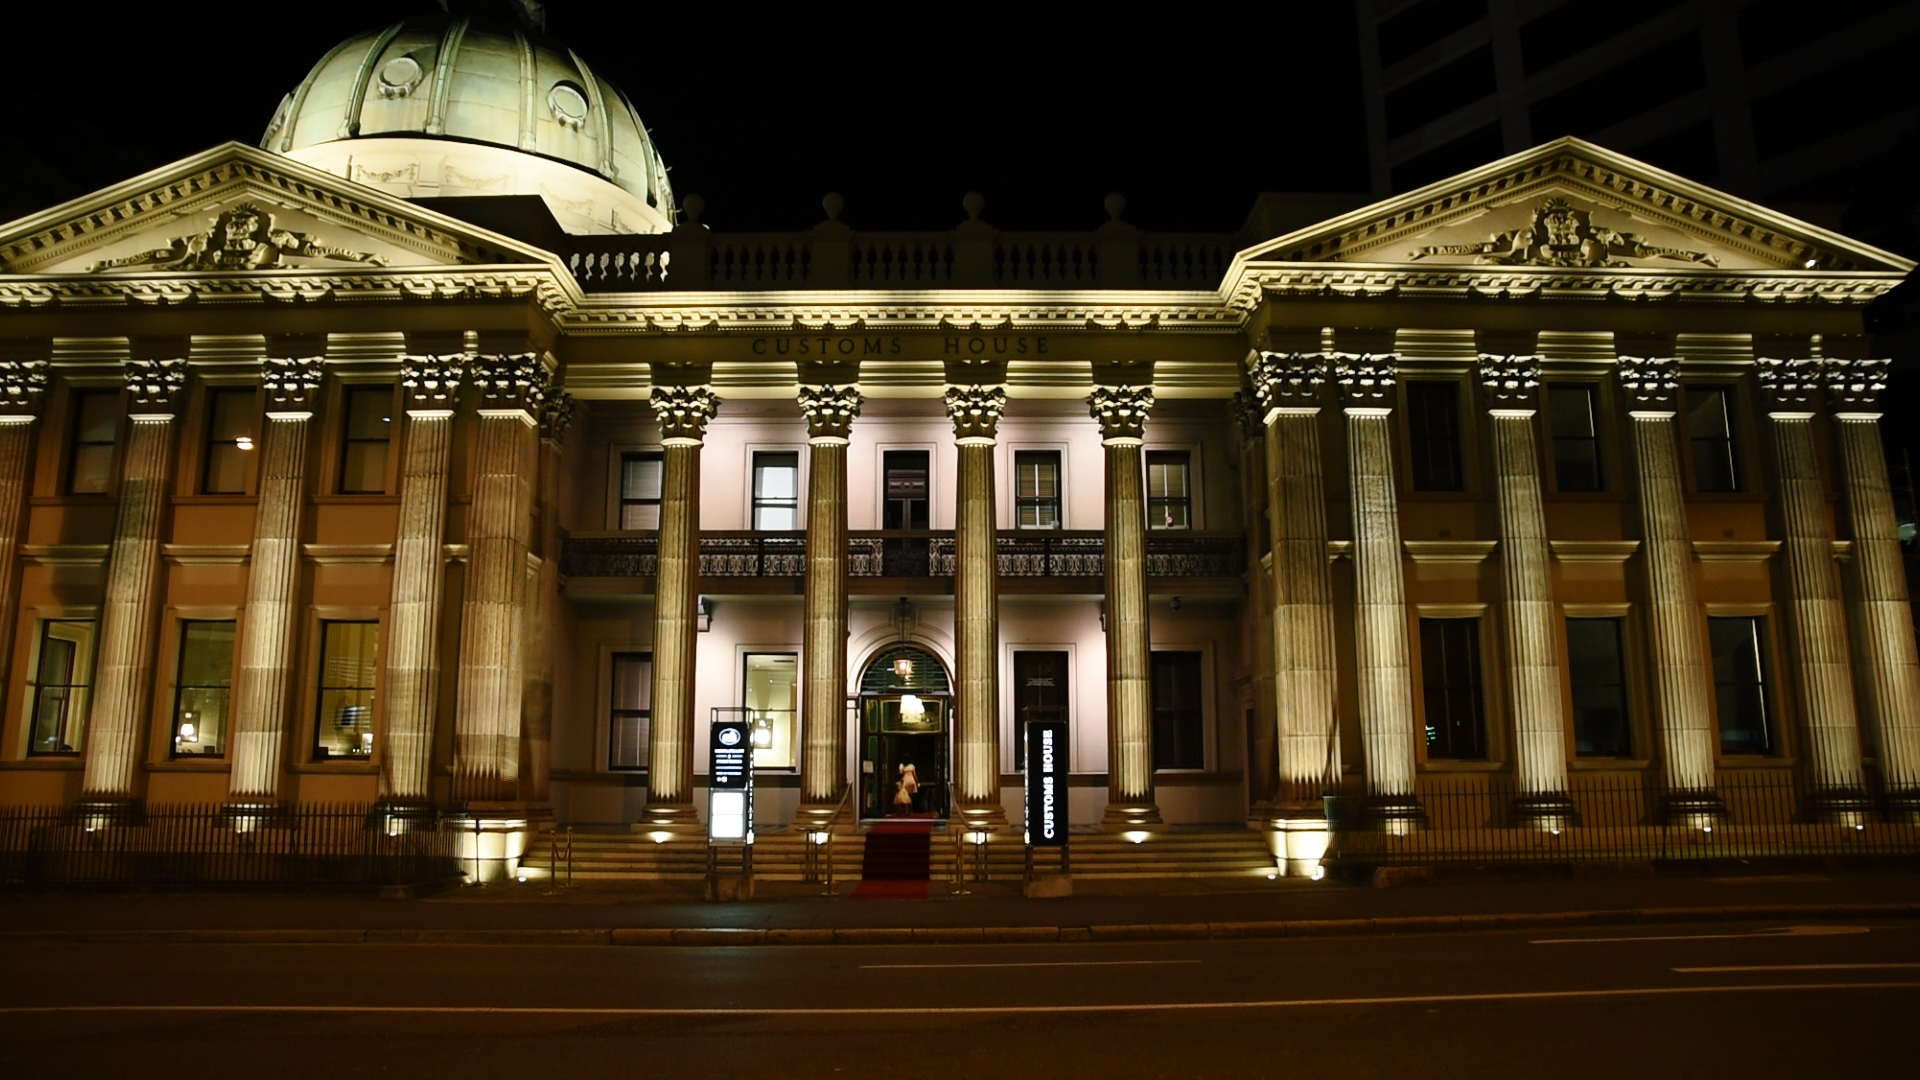 The grand Customs House lit at night